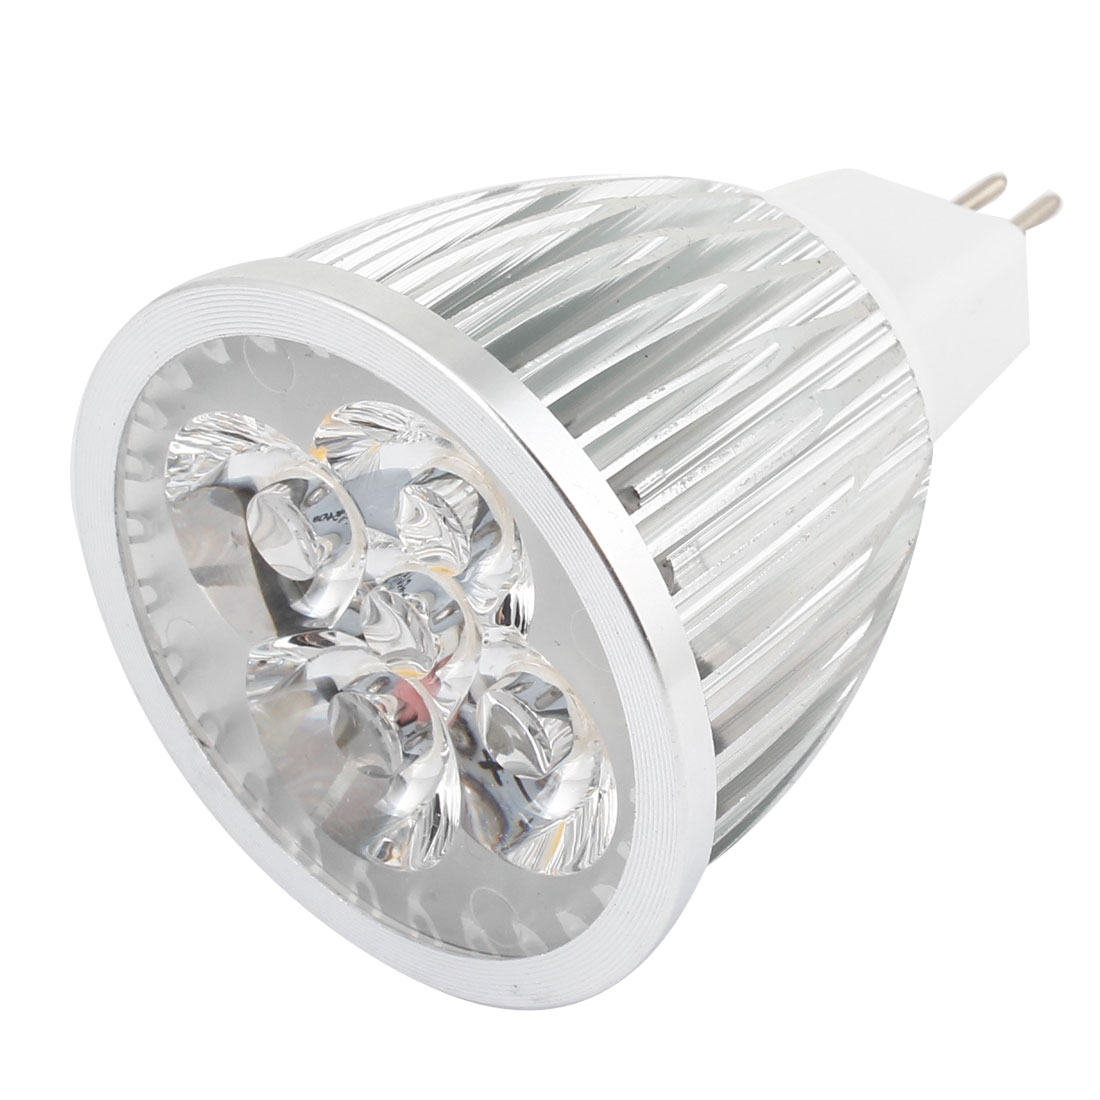 AC 85-265V 5W MR16 High Power Warm White LED Spotlight Light Lamp Bulb